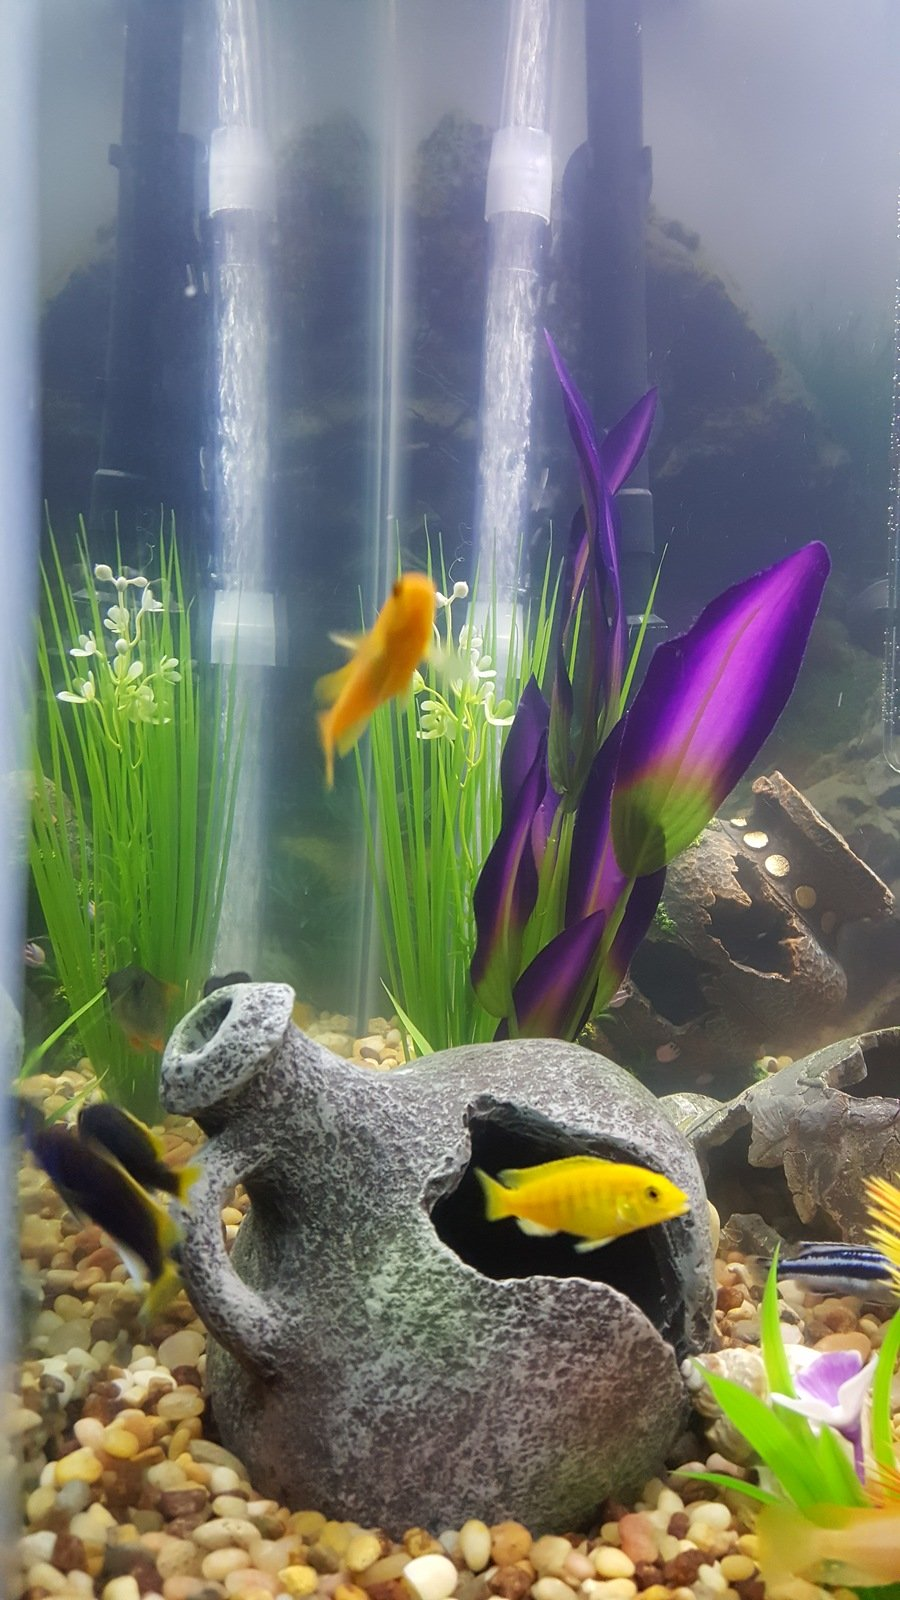 Fish for first tank - Im New To African Cichlids I Had One Once With Some Piranhas But Never A Cichild Only Tank